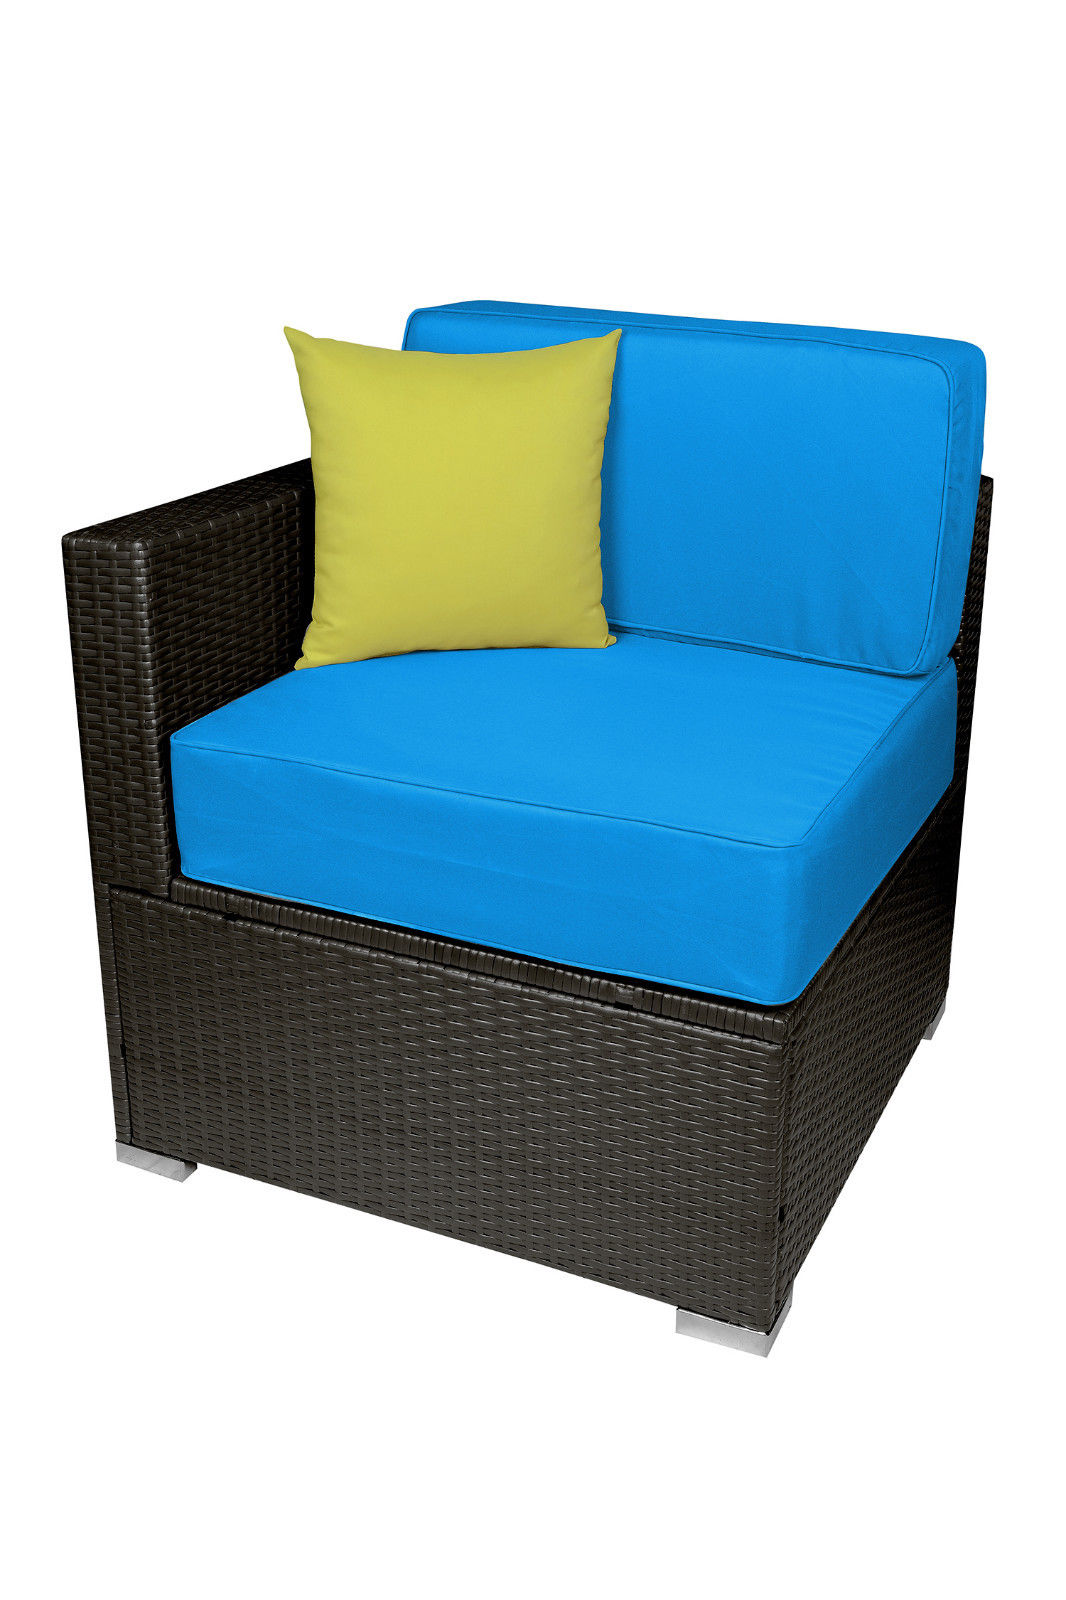 Outdoor Wicker Sofa All-Weather Patio Furniture Sectional